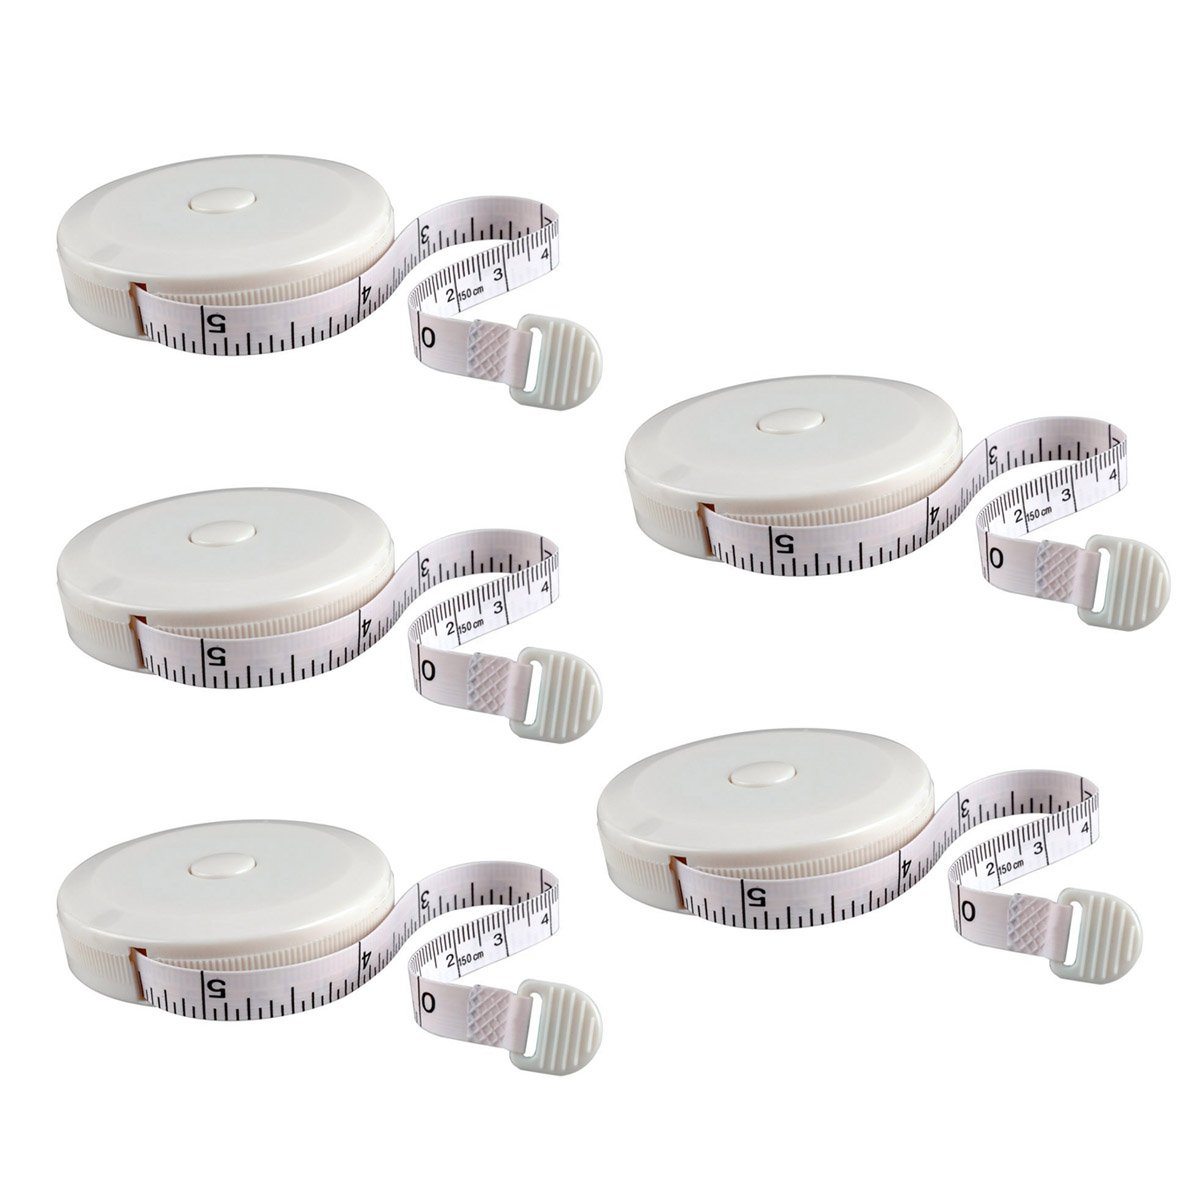 eZAKKA Tape Measure 60 Inch Push Button Retractable Soft Tape Measure Measuring Retractable Tape for Sewing Tailor Cloth Ruler, 5-Pack